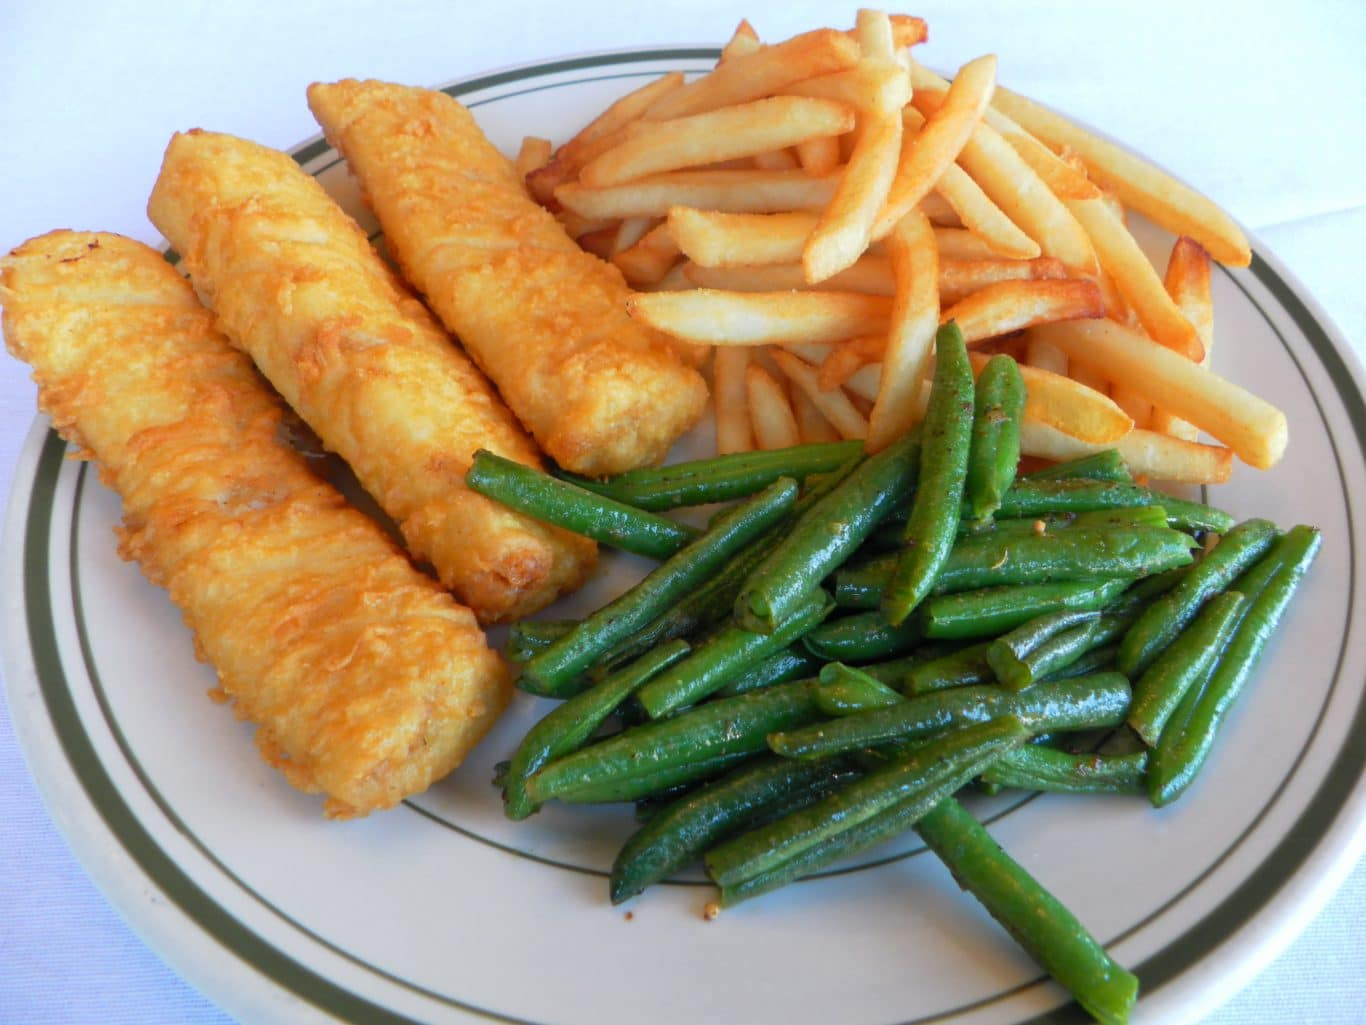 Iceland Cod Fish & Chips